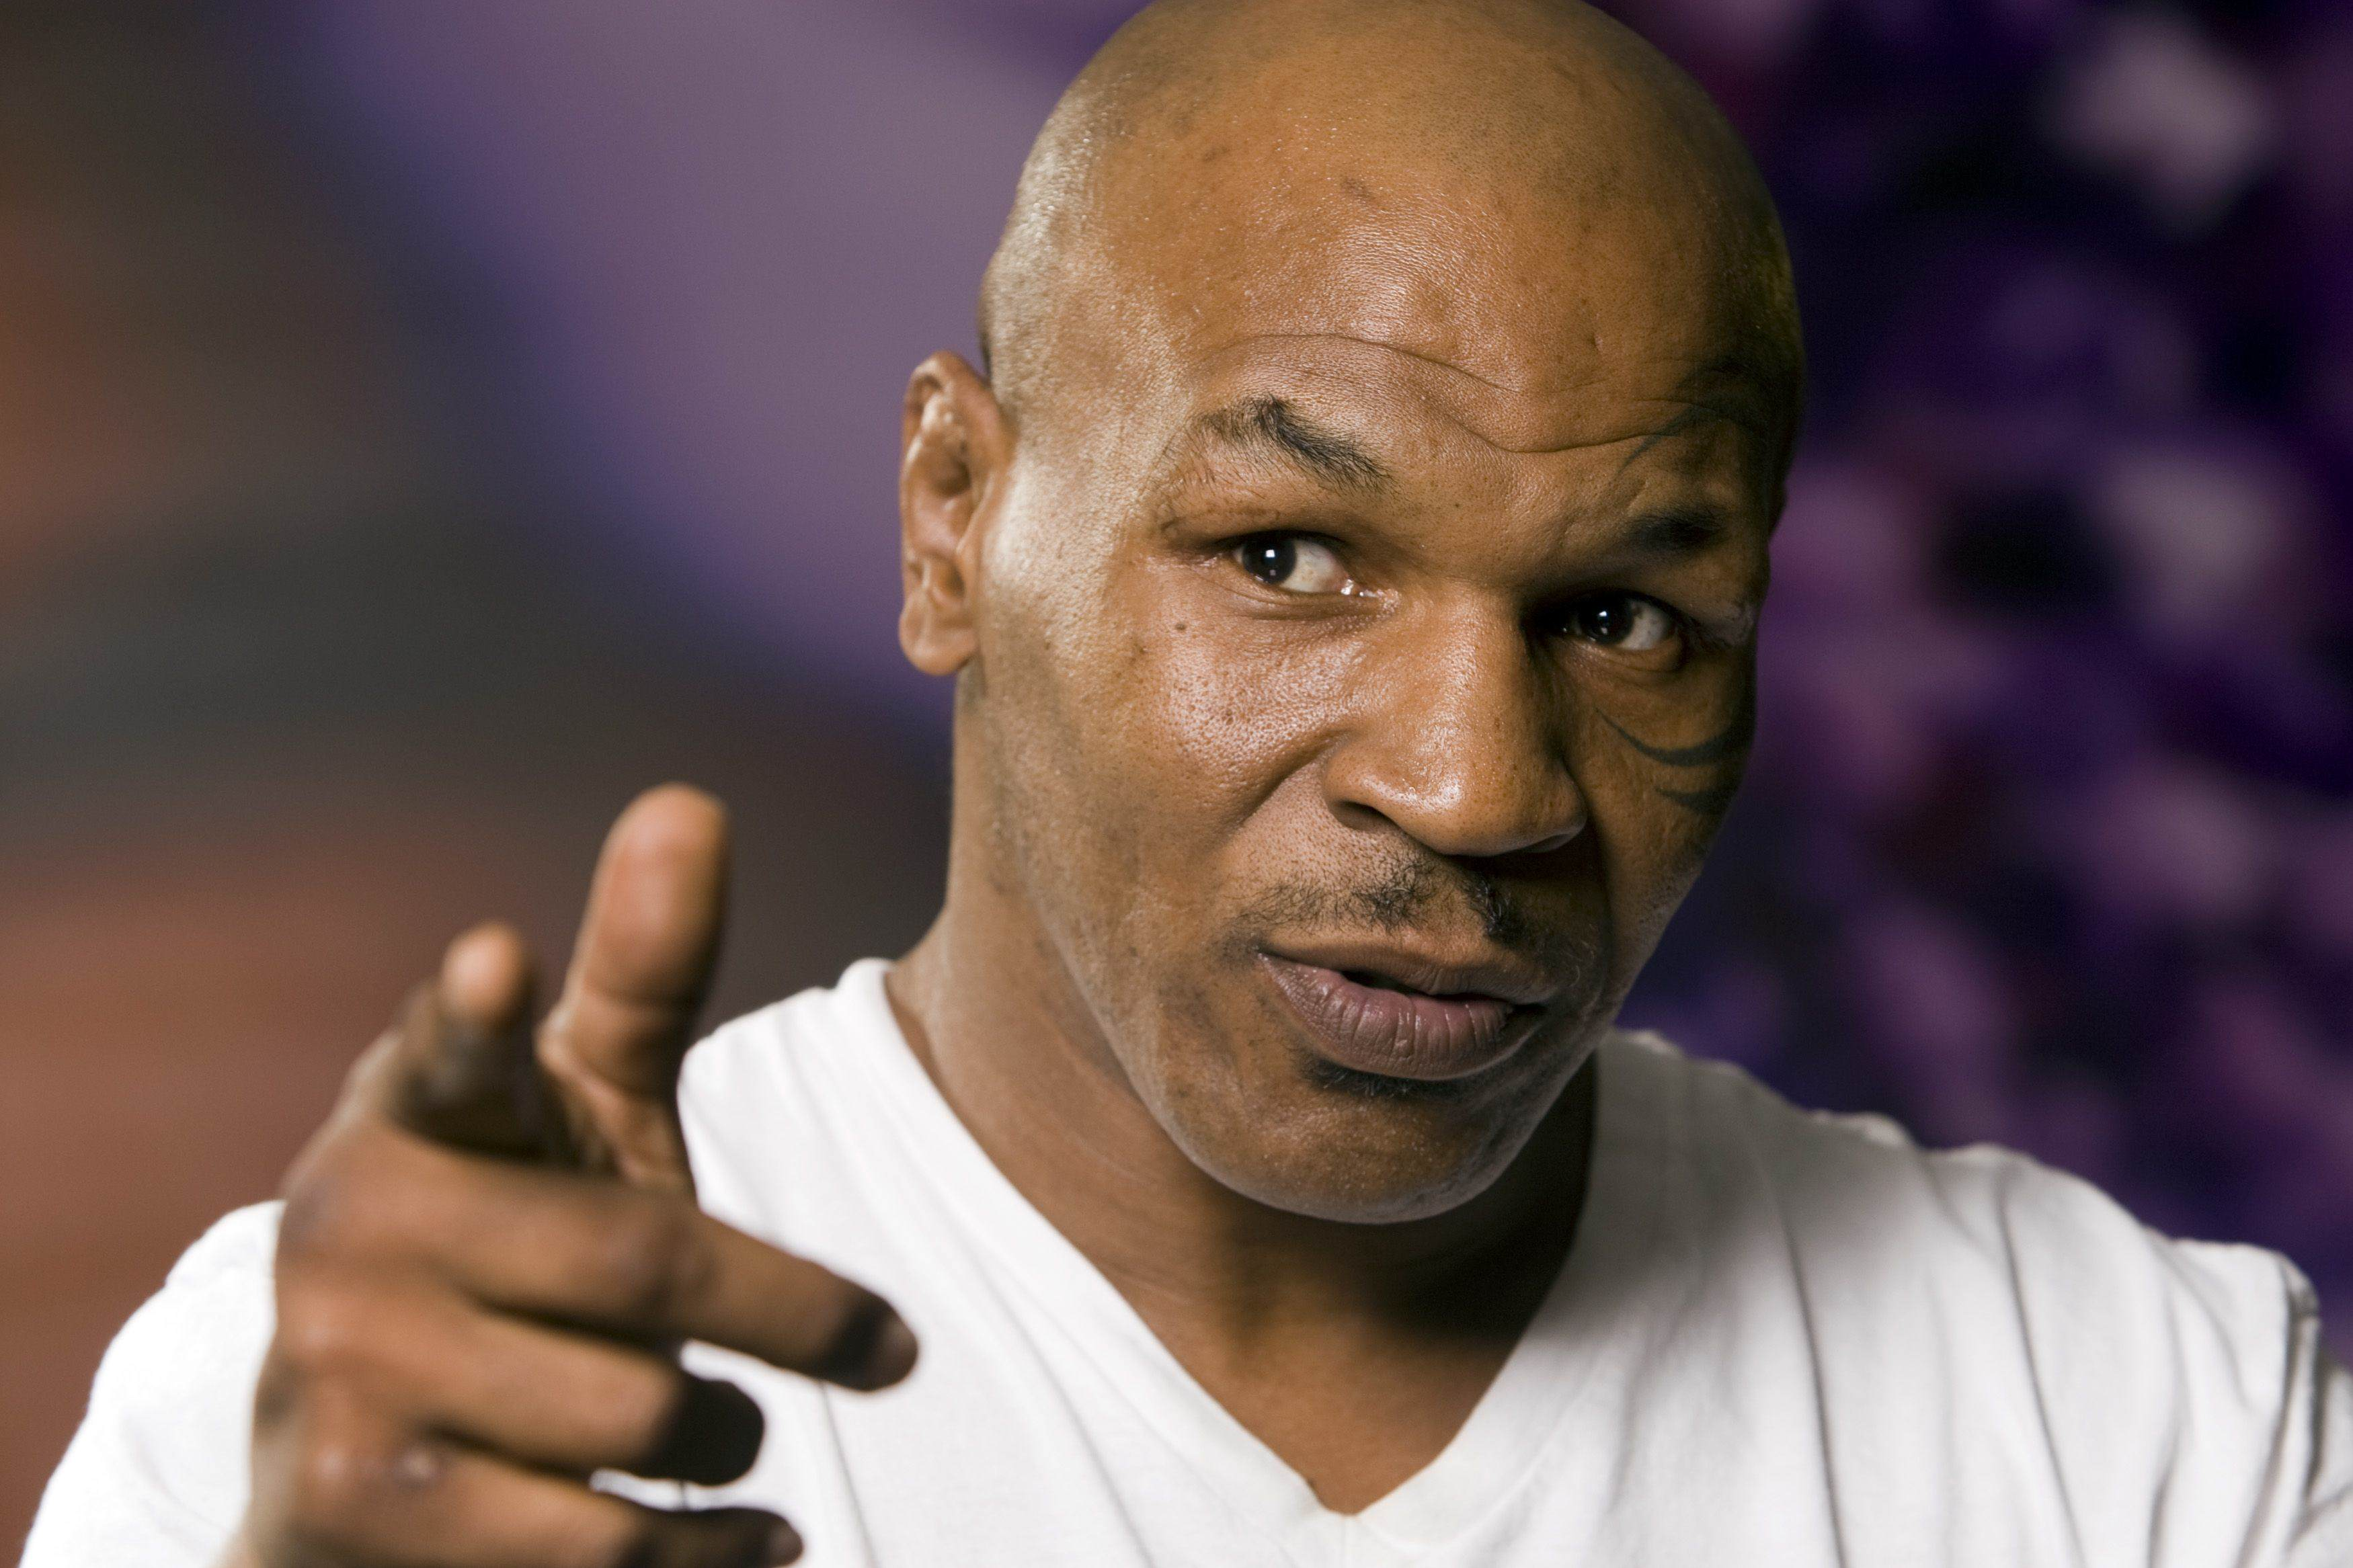 Steve O And Mike Tyson Once Went On A Wild Cocaine Session Mike Tyson 660 Reuters